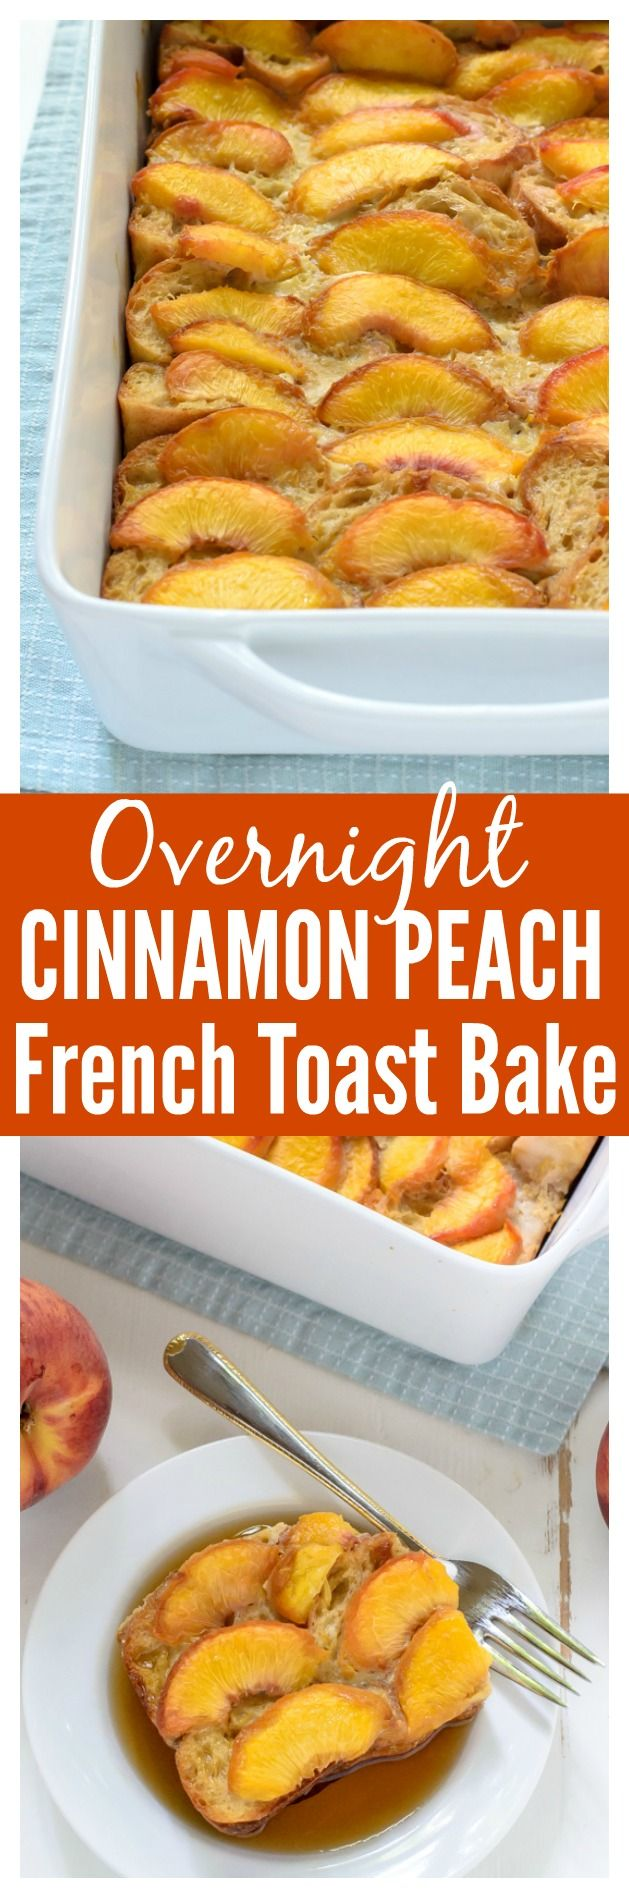 Overnight Cinnamon Peach French Toast Bake